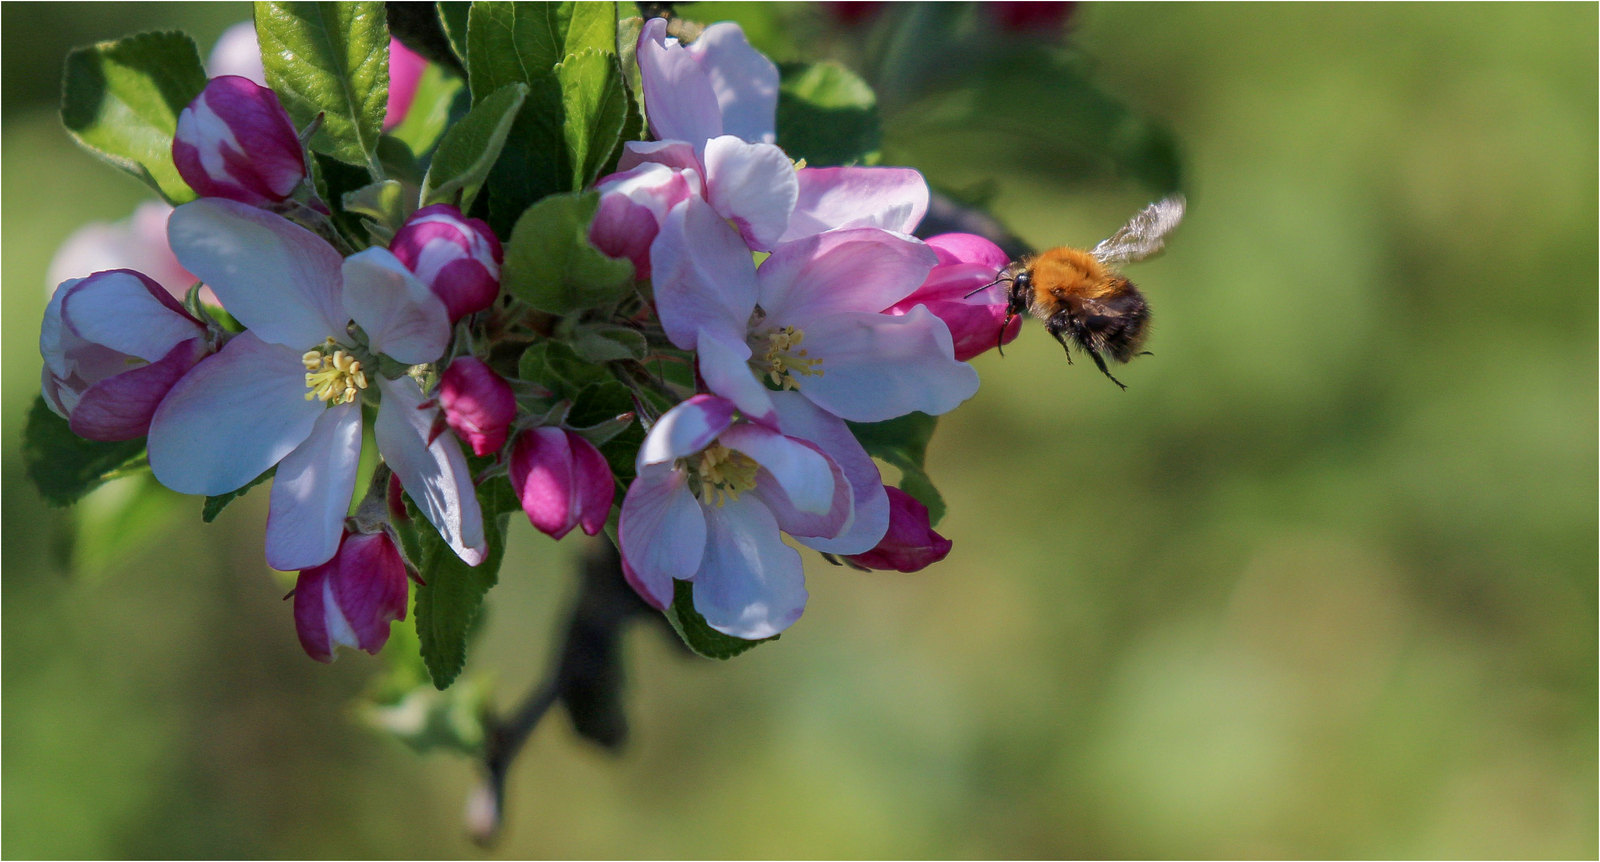 Apple Blossom with Bee in flight